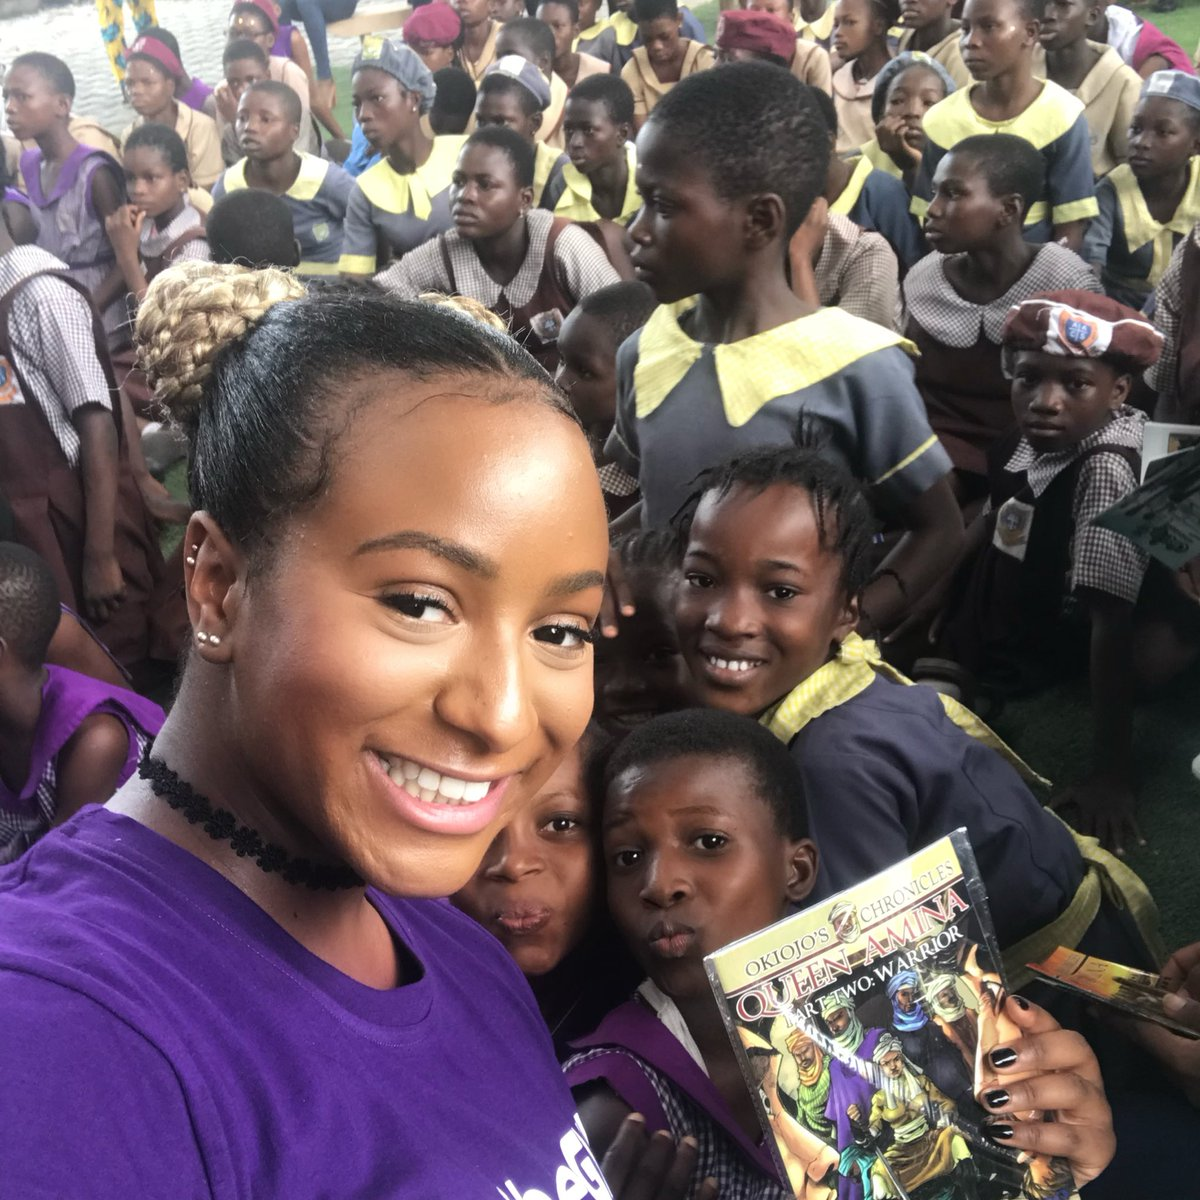 Proud to be part of the #DayOfTheGirl Campaign by the UN 💜👧🏾🕊 Education is everything! #CuppyCares